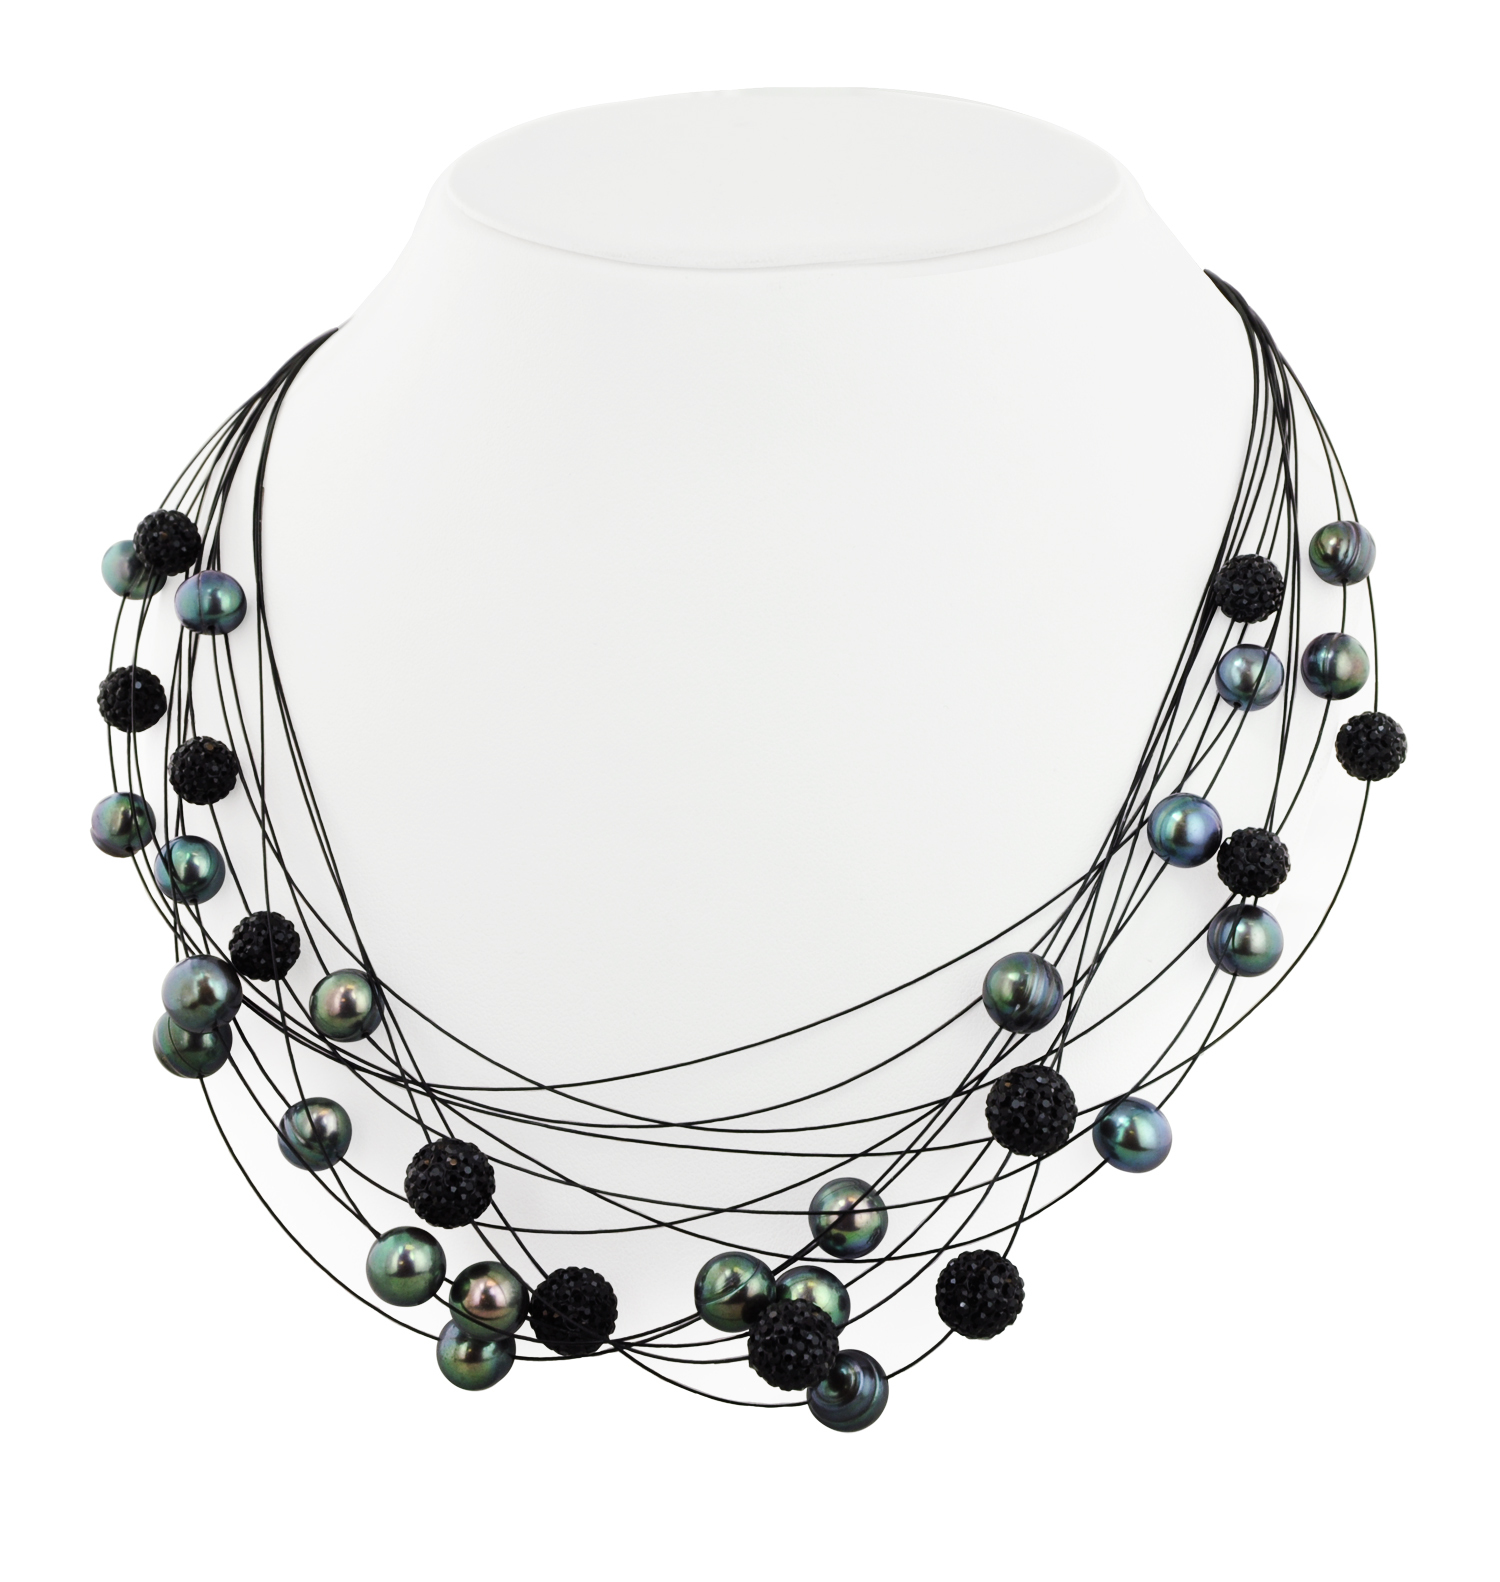 Sterling Silver 7-10mm Black Round Ringed Freshwater Cultured Pearl and 8mm Pave Crystal Bead Steel Wire Galaxy Necklace